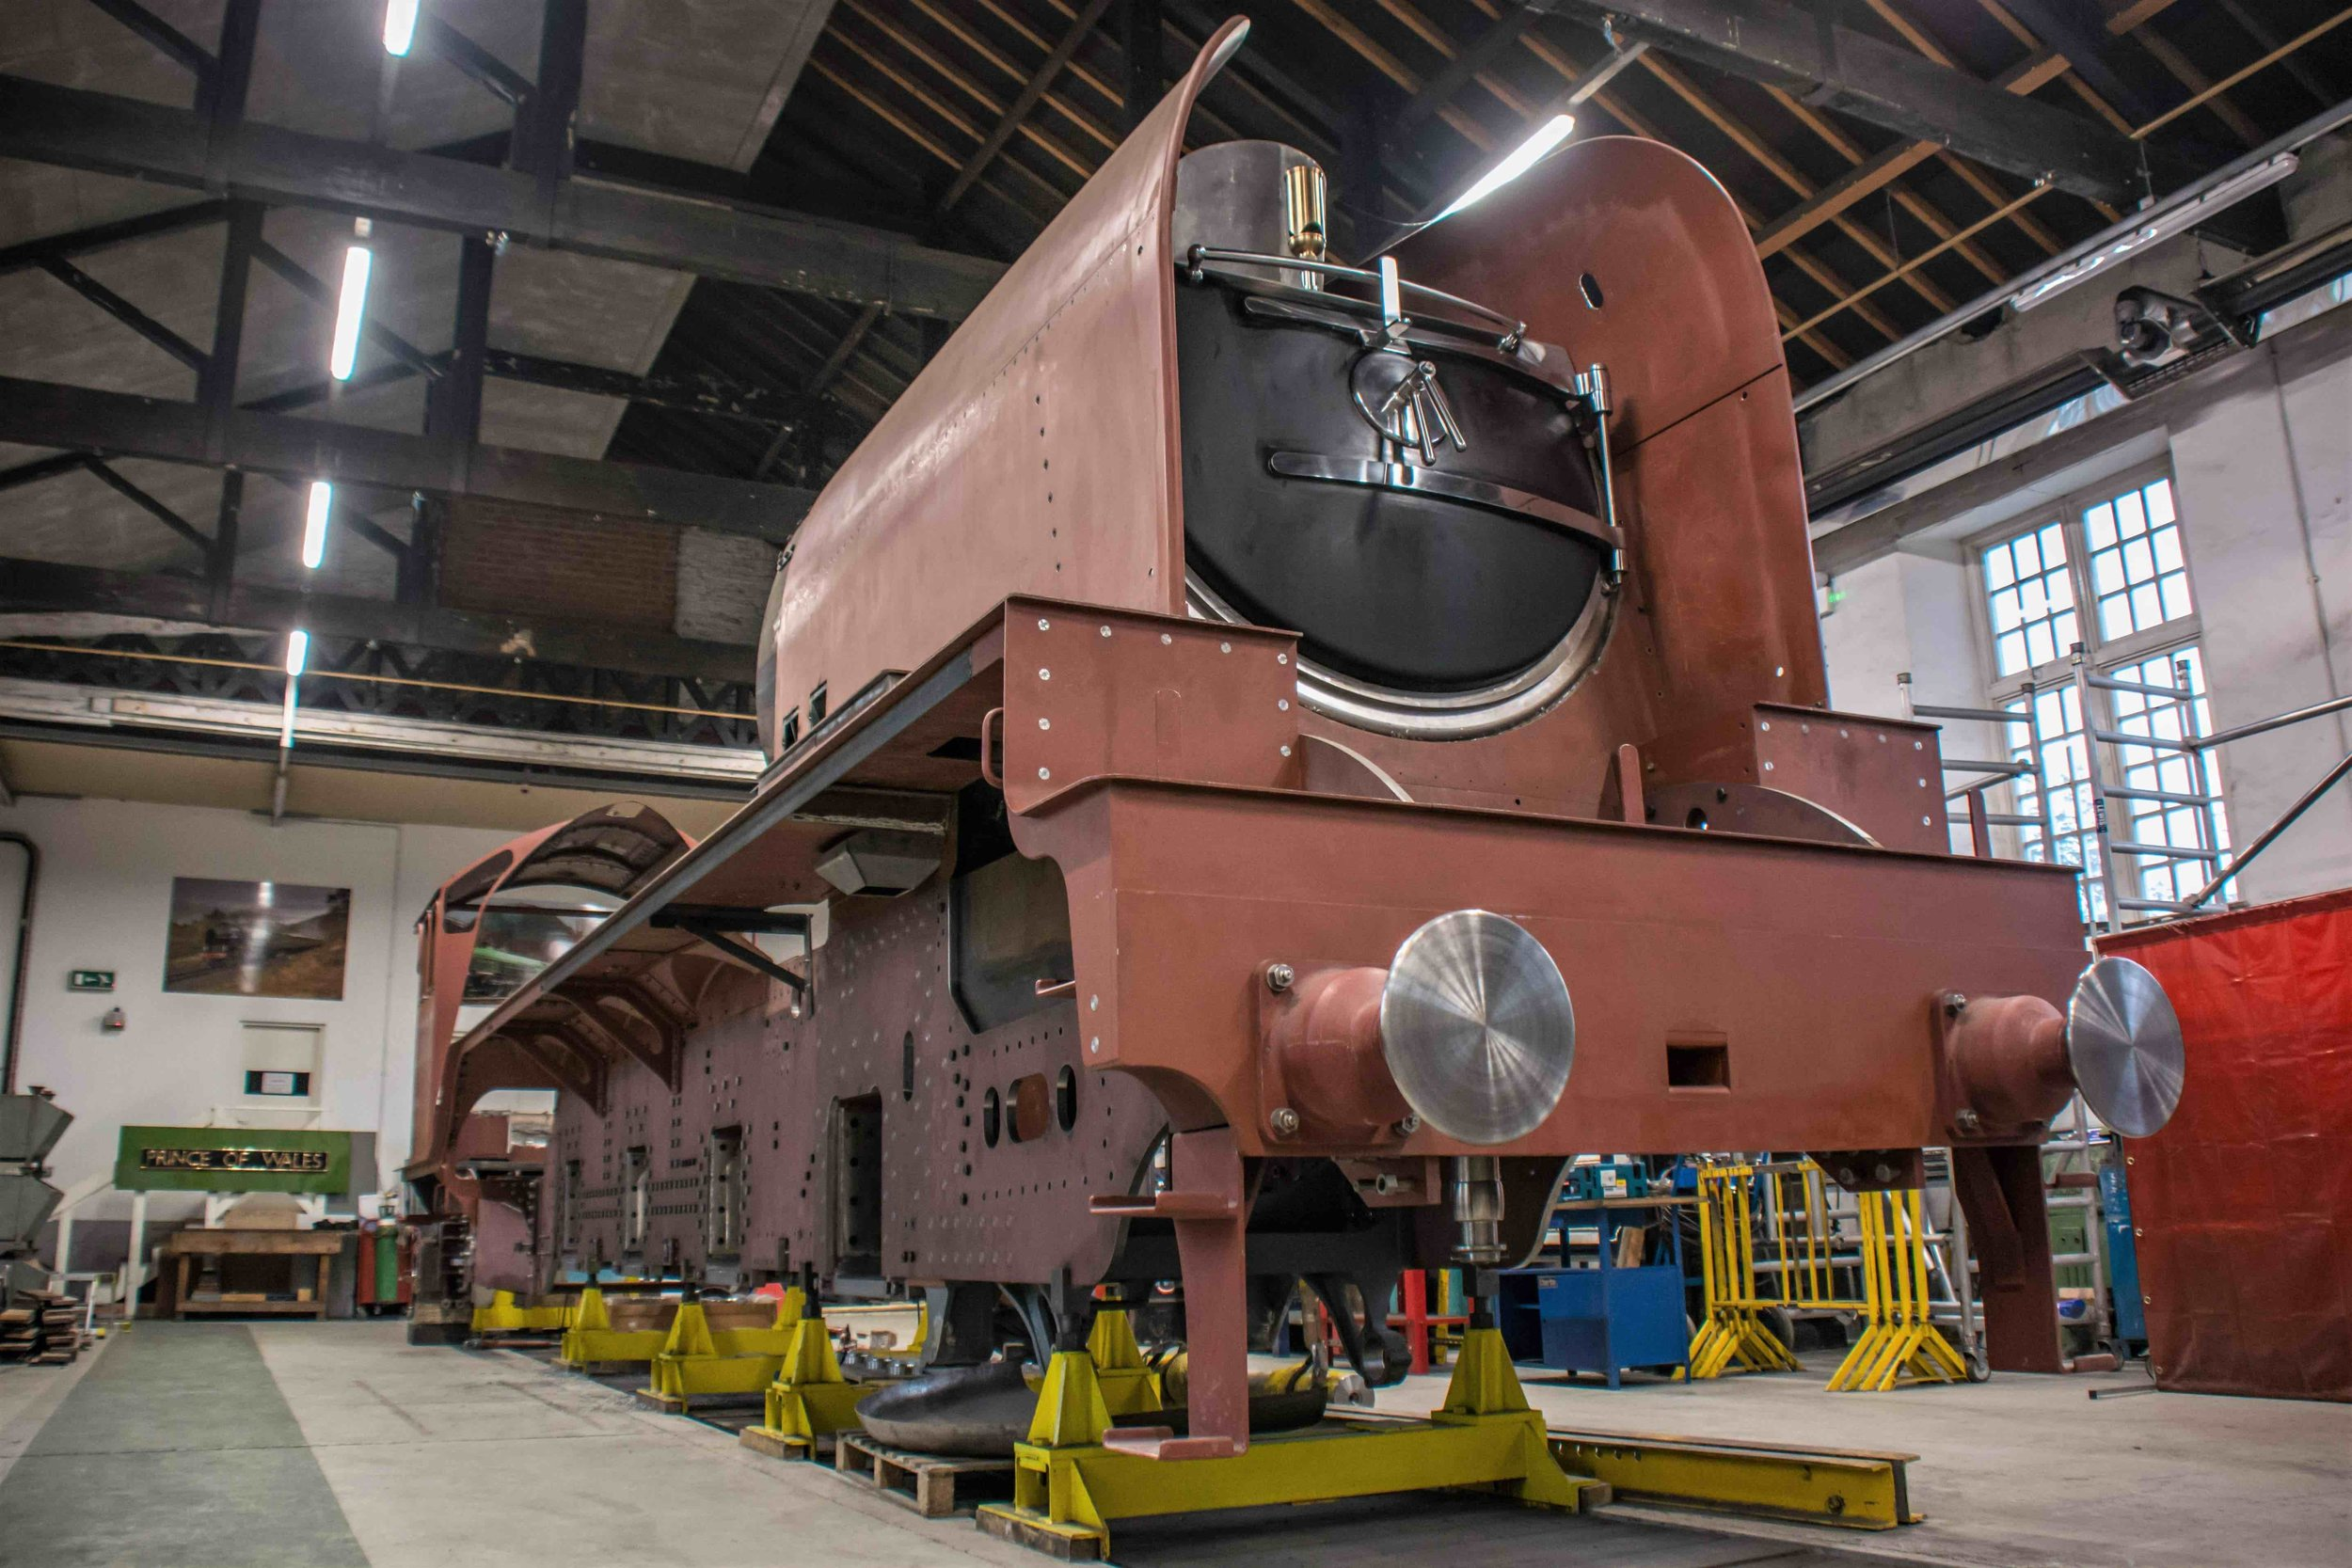 The imposing shape of the new-build 'P2' No. 2007  Prince of Wales  – ready to receive its crank axle and wheels – inside Darlington Locomotive Works. MANDY GRANT